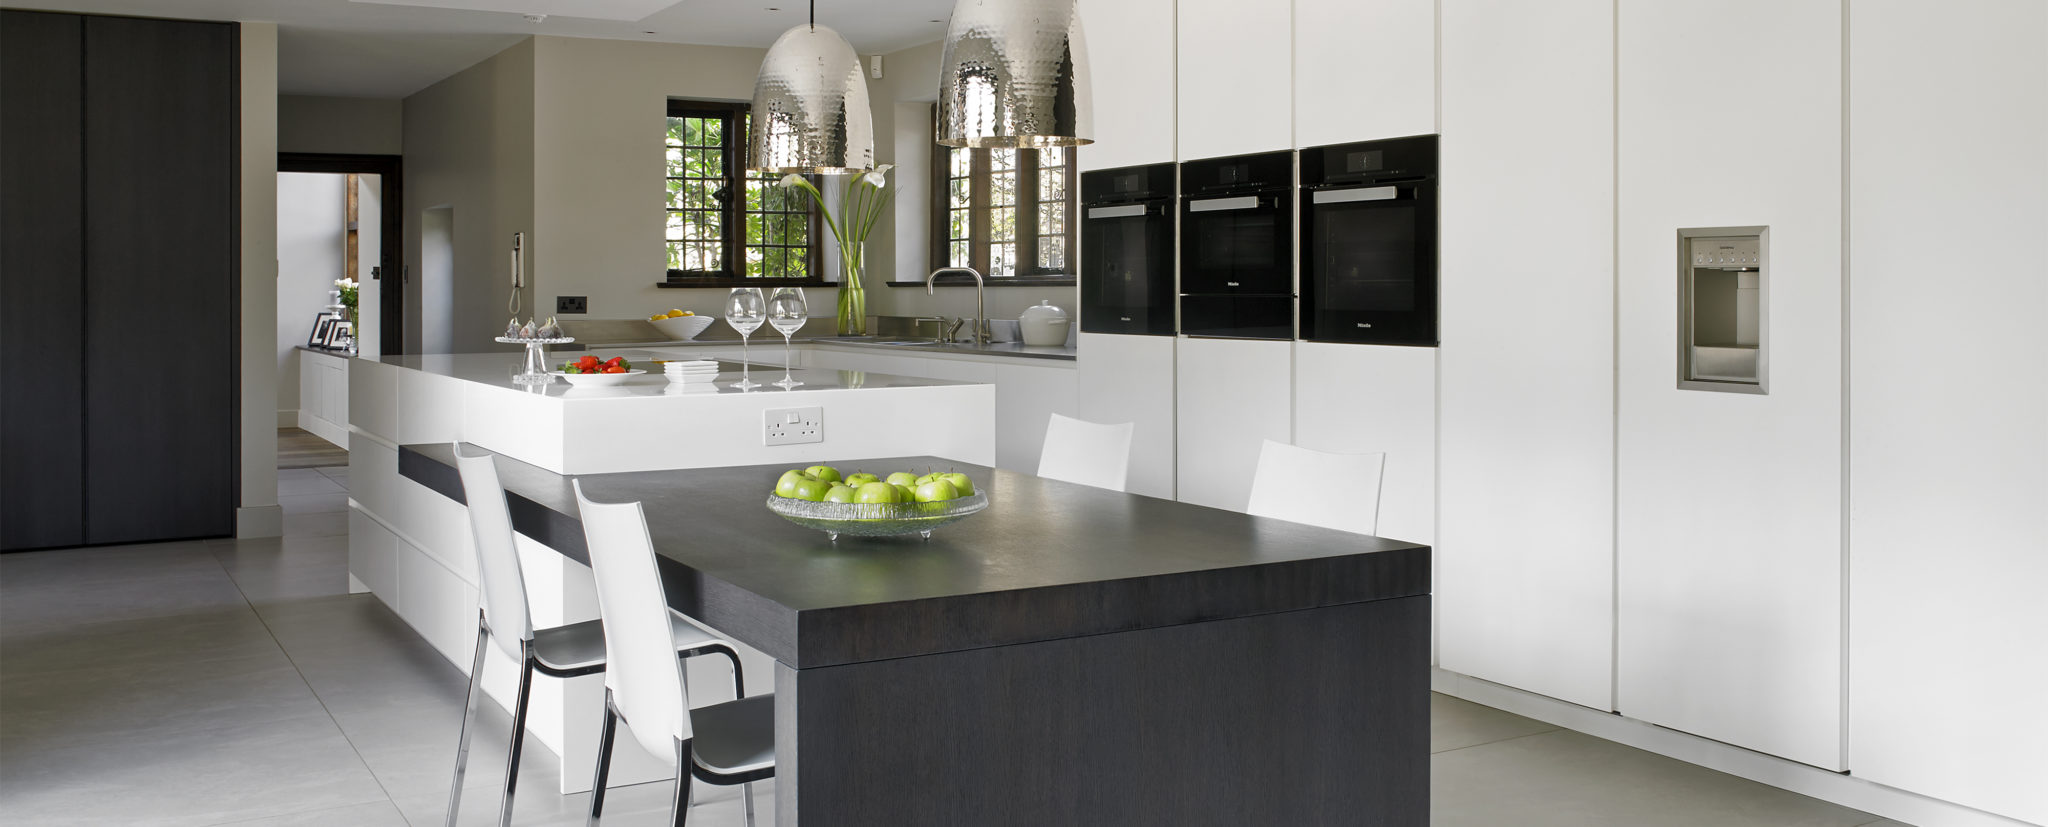 Bespoke Modern White Kitchen Design by Brayer with dining table island extension